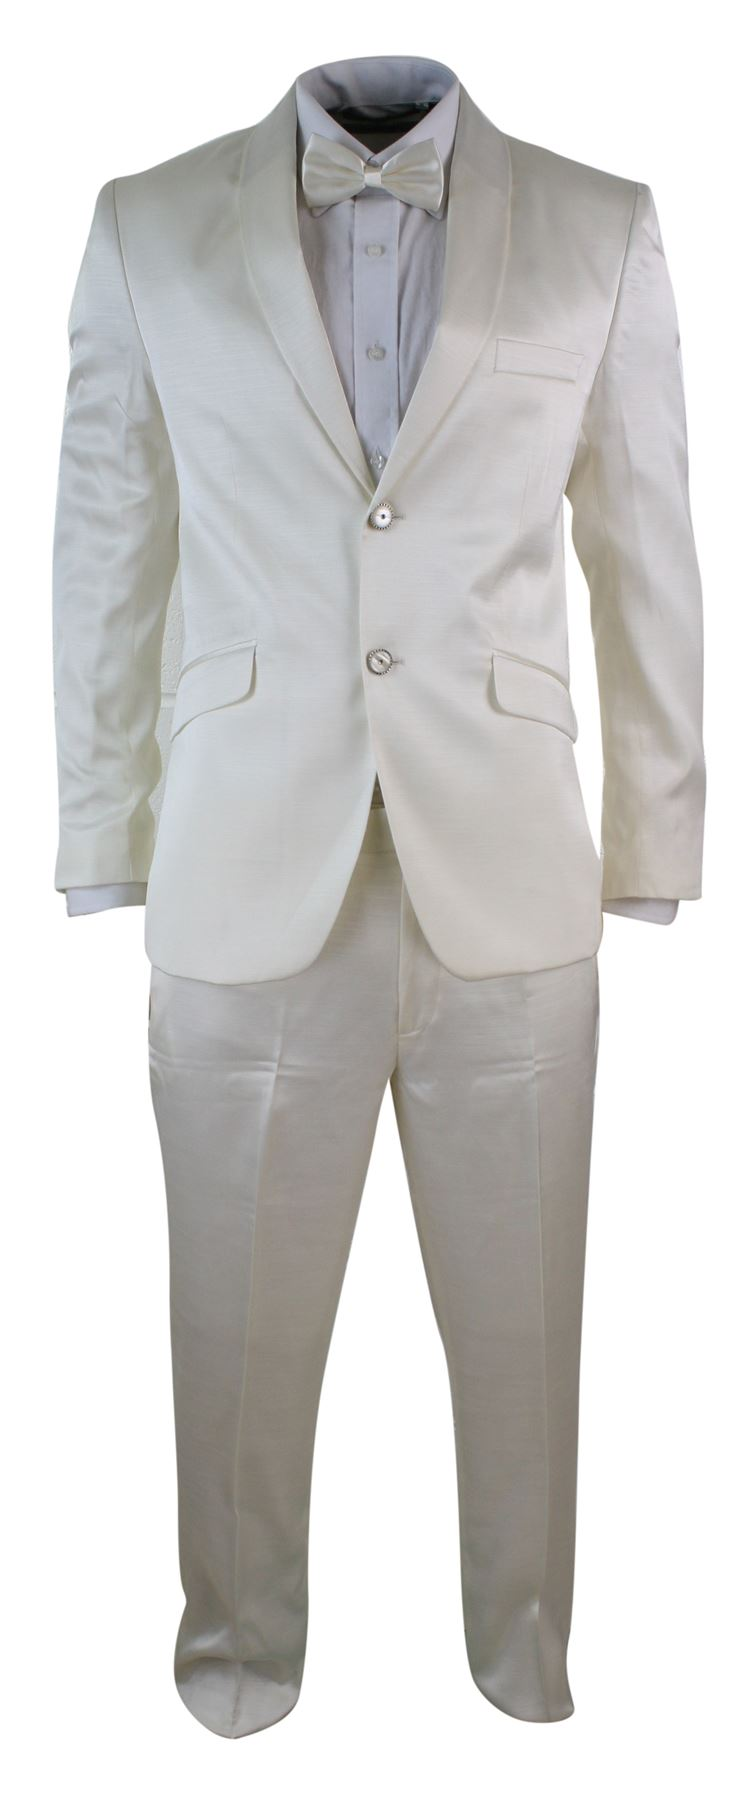 A tuxedo (American English), or dinner jacket (British English), is a semi-formal two or three piece suit for evening wear, distinguished primarily by satin or grosgrain jacket's lapels, and similar stripes along the outseam of the trousers.